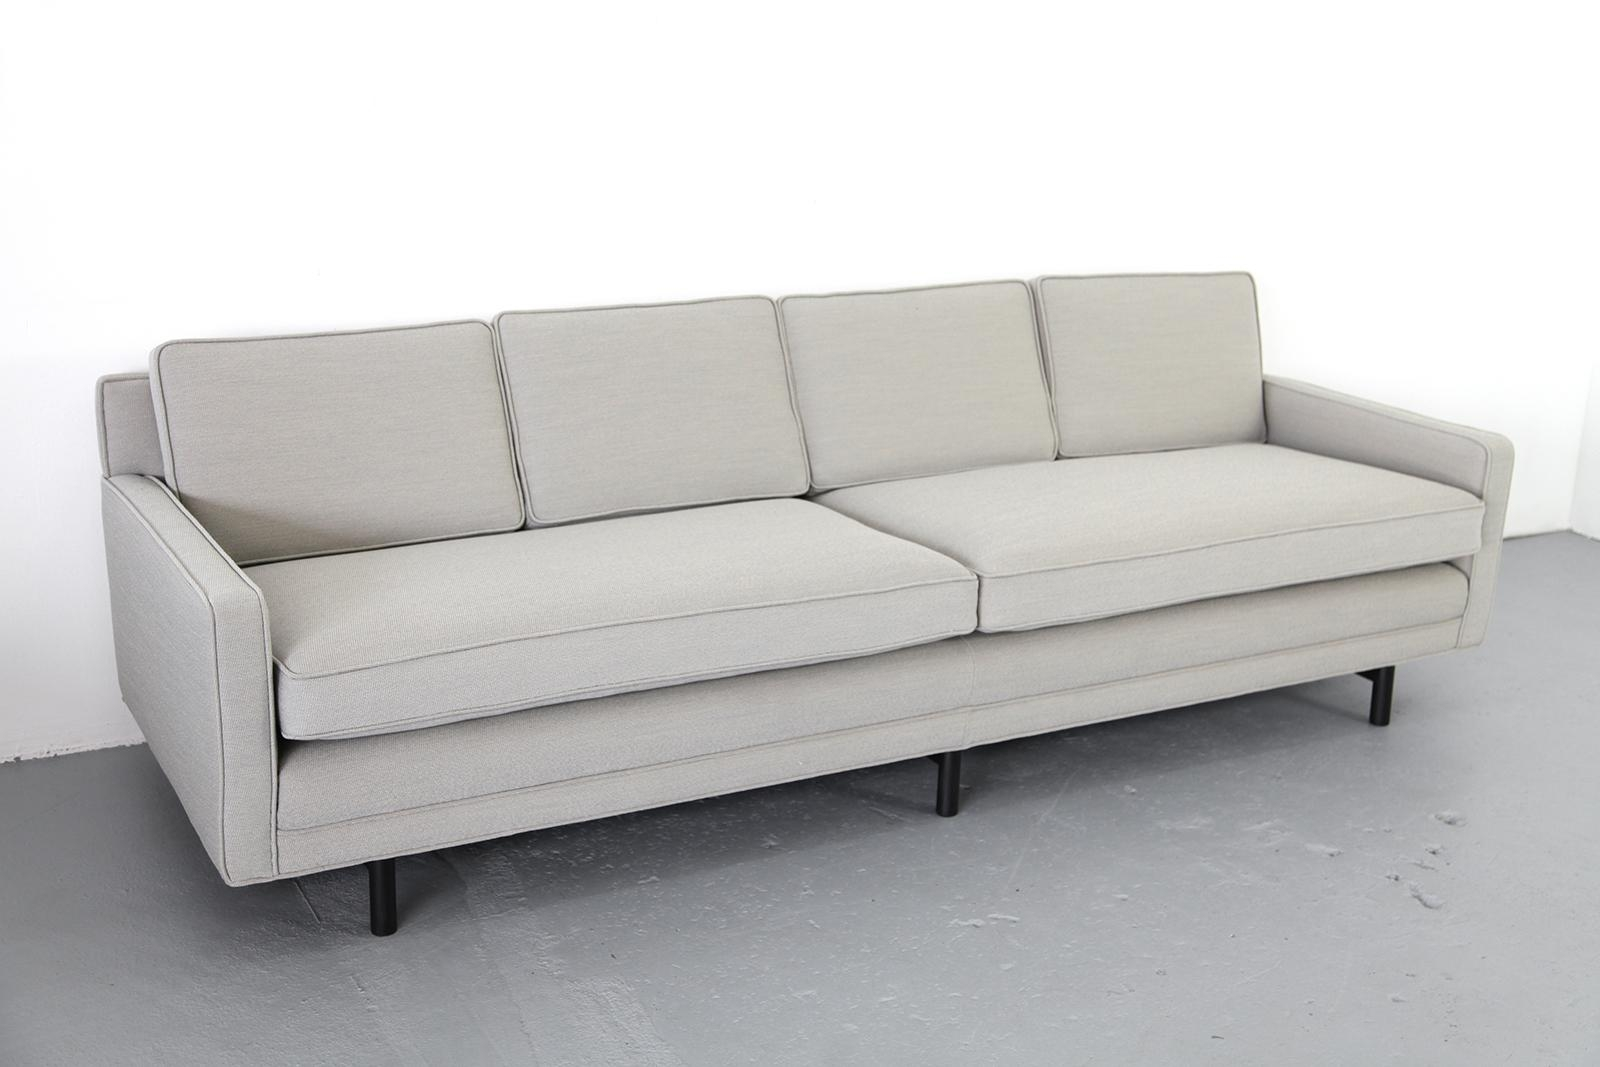 4-Seater Sofapaul Mccobb For Directional For Sale At Pamono in 4 Seater Sofas